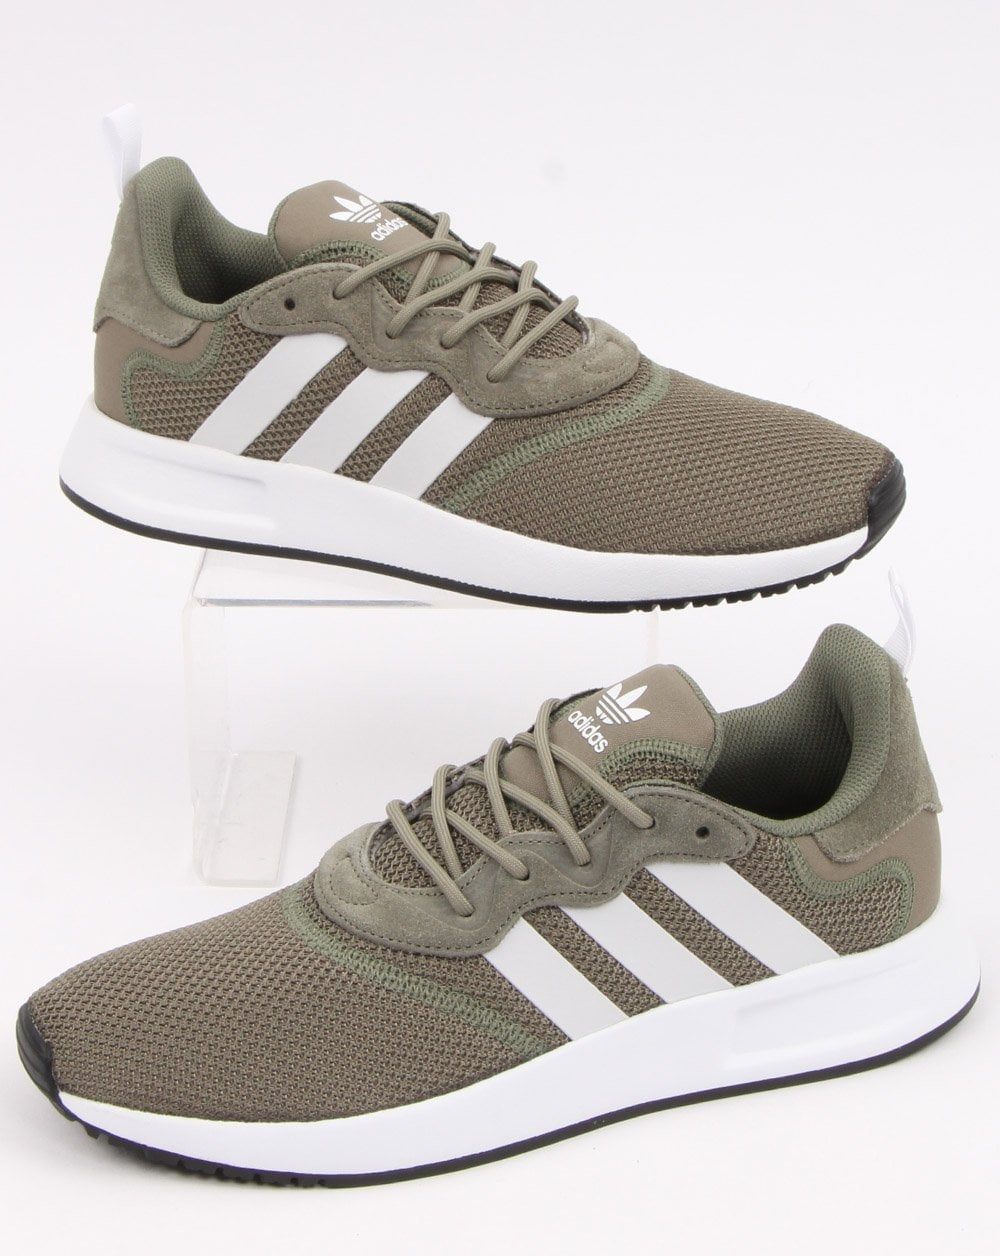 adidas X PLR S Trainers in Green and